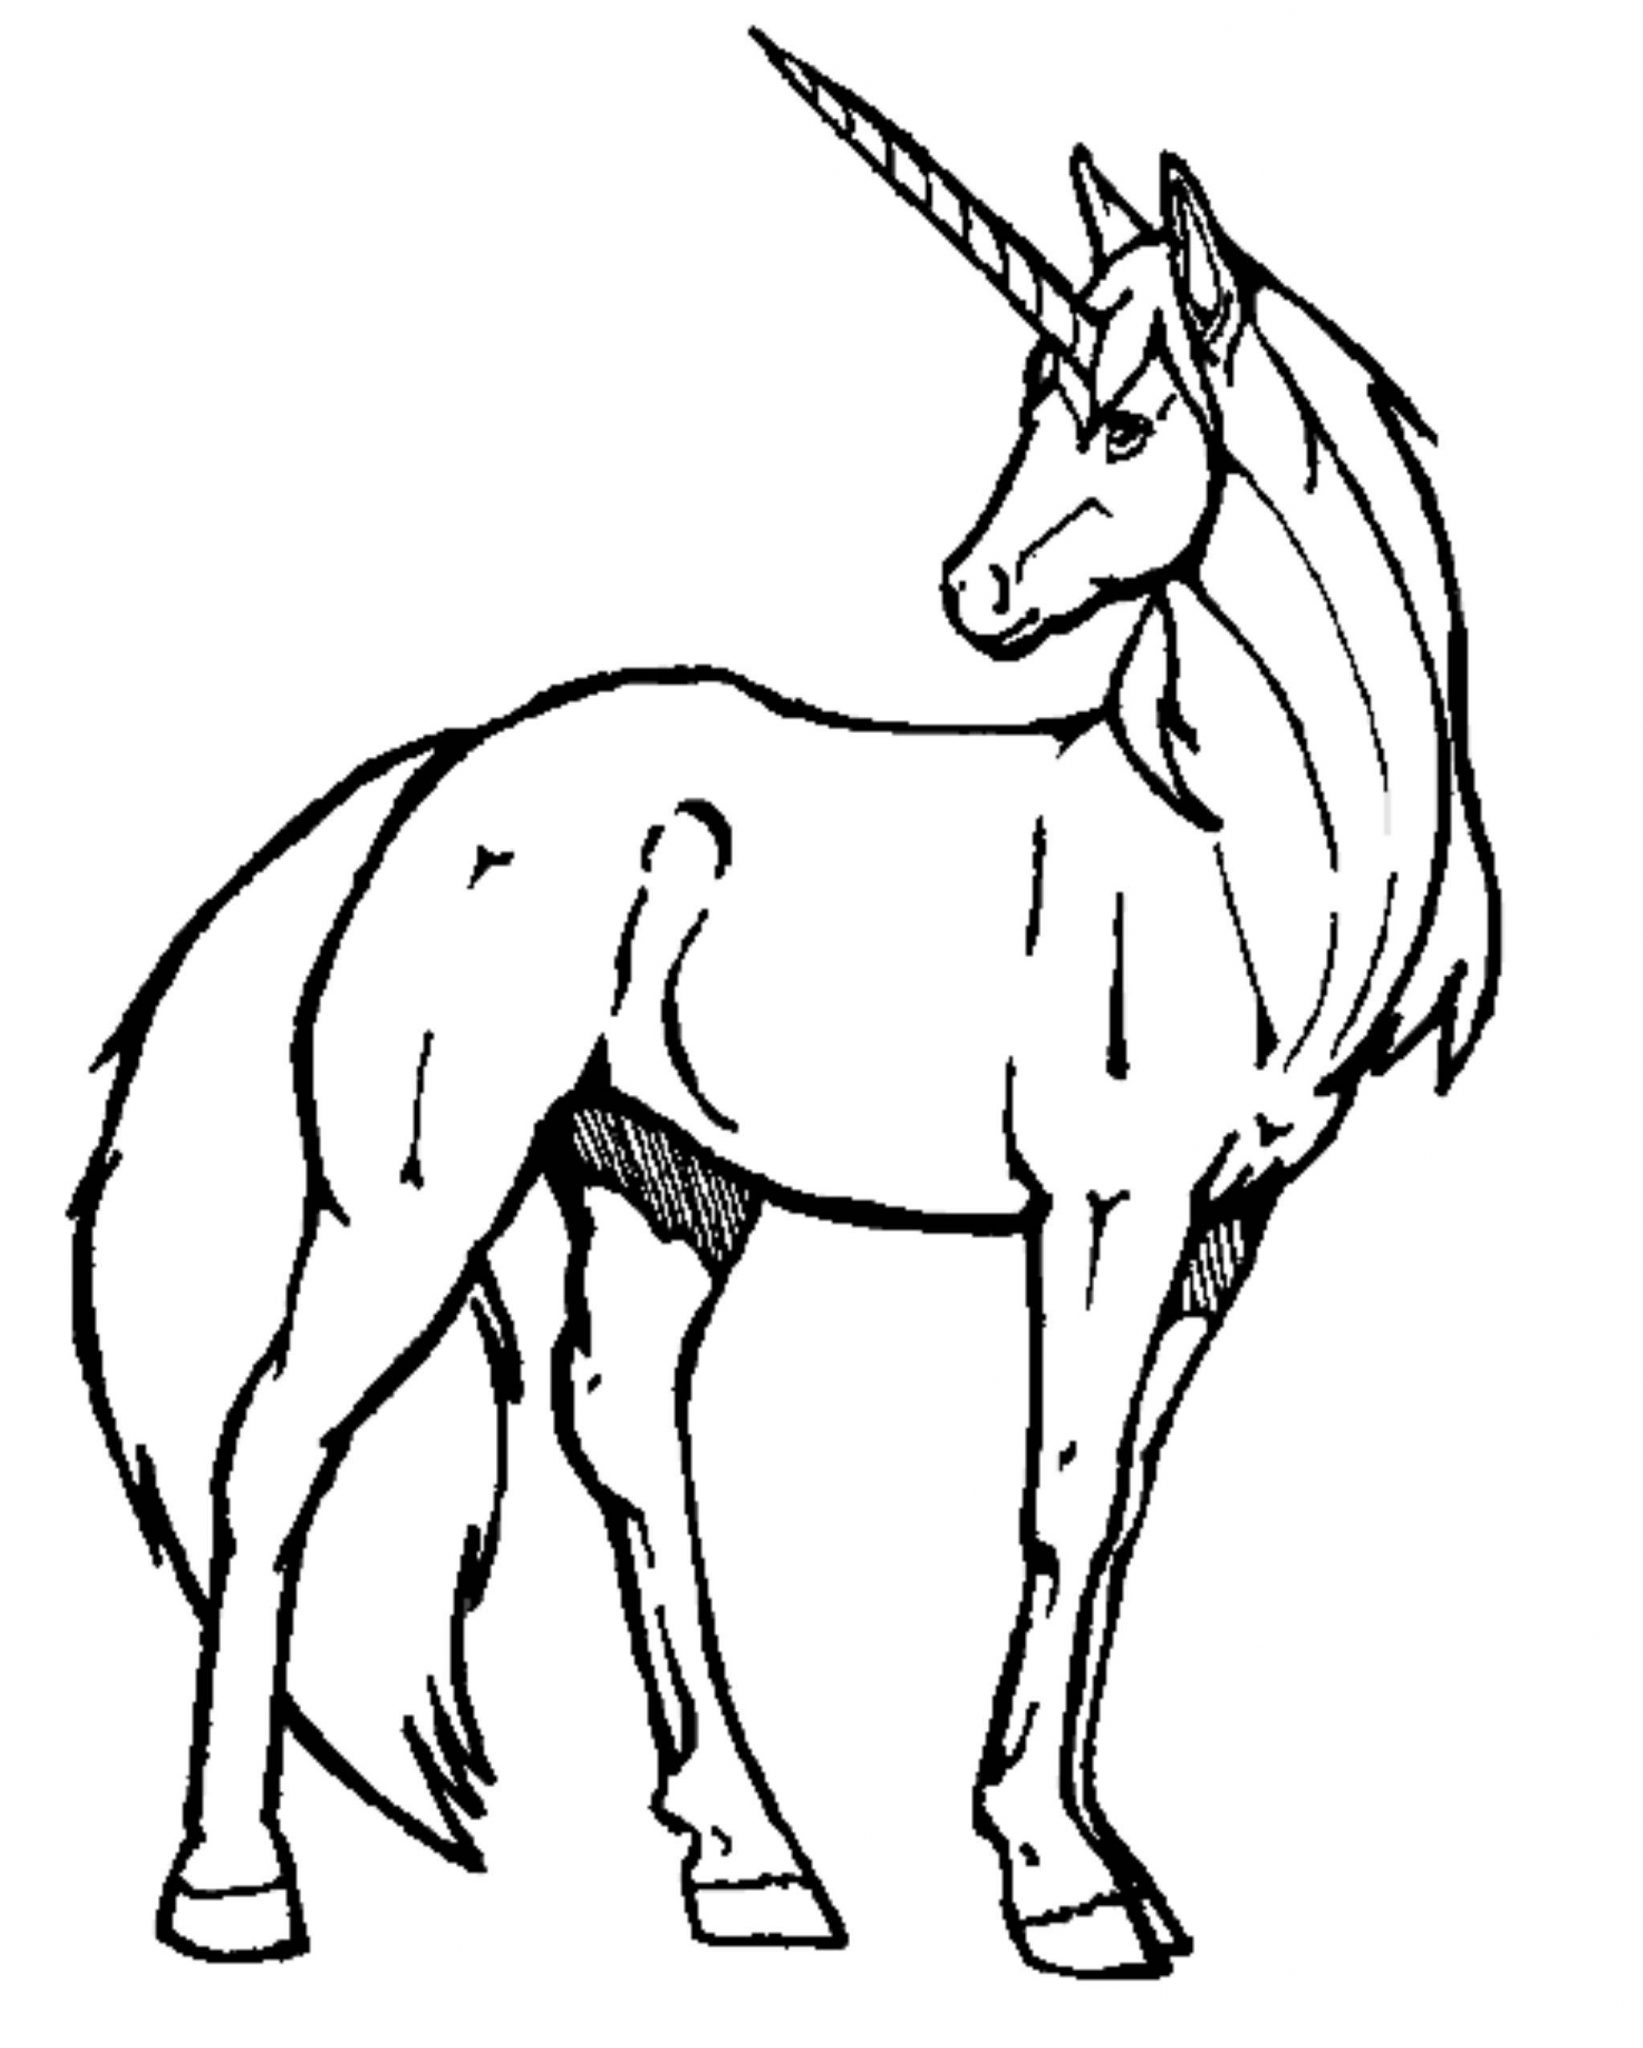 coloring pages of unicorns unicorn coloring pages to download and print for free unicorns coloring pages of